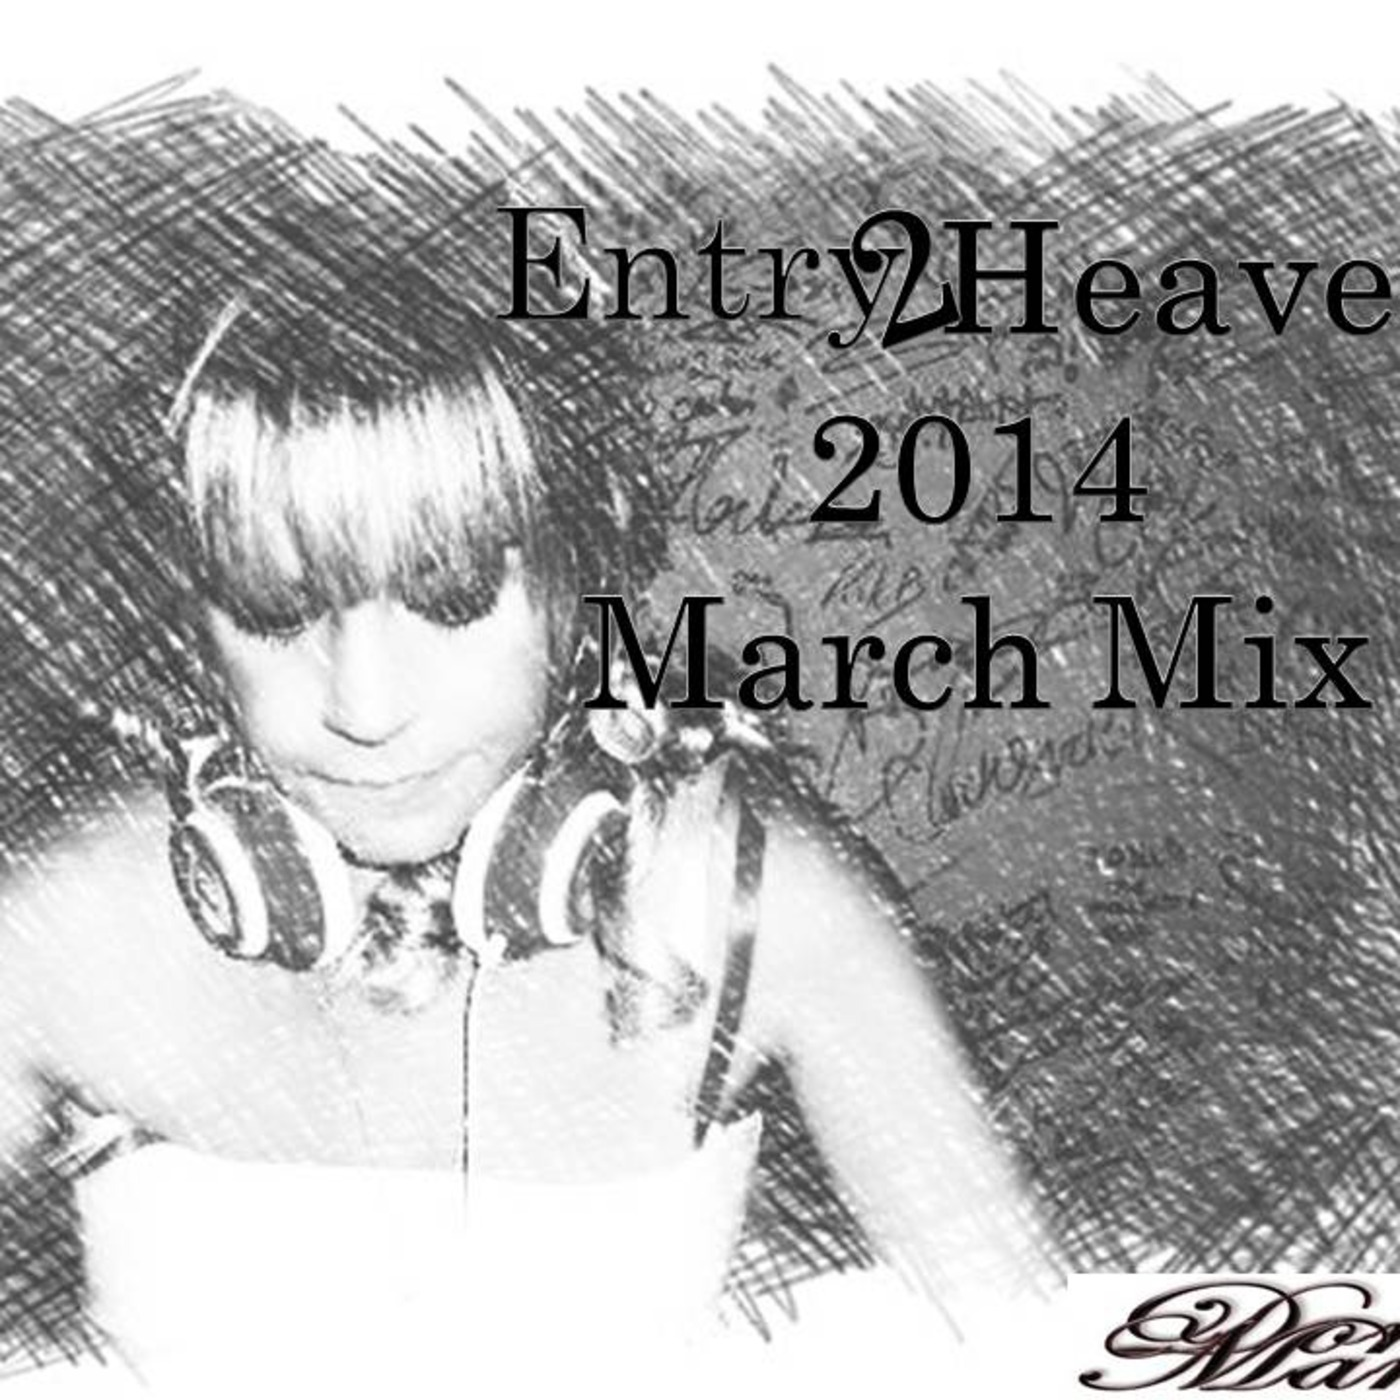 Donna Marie - Entry2Heaven Podcast